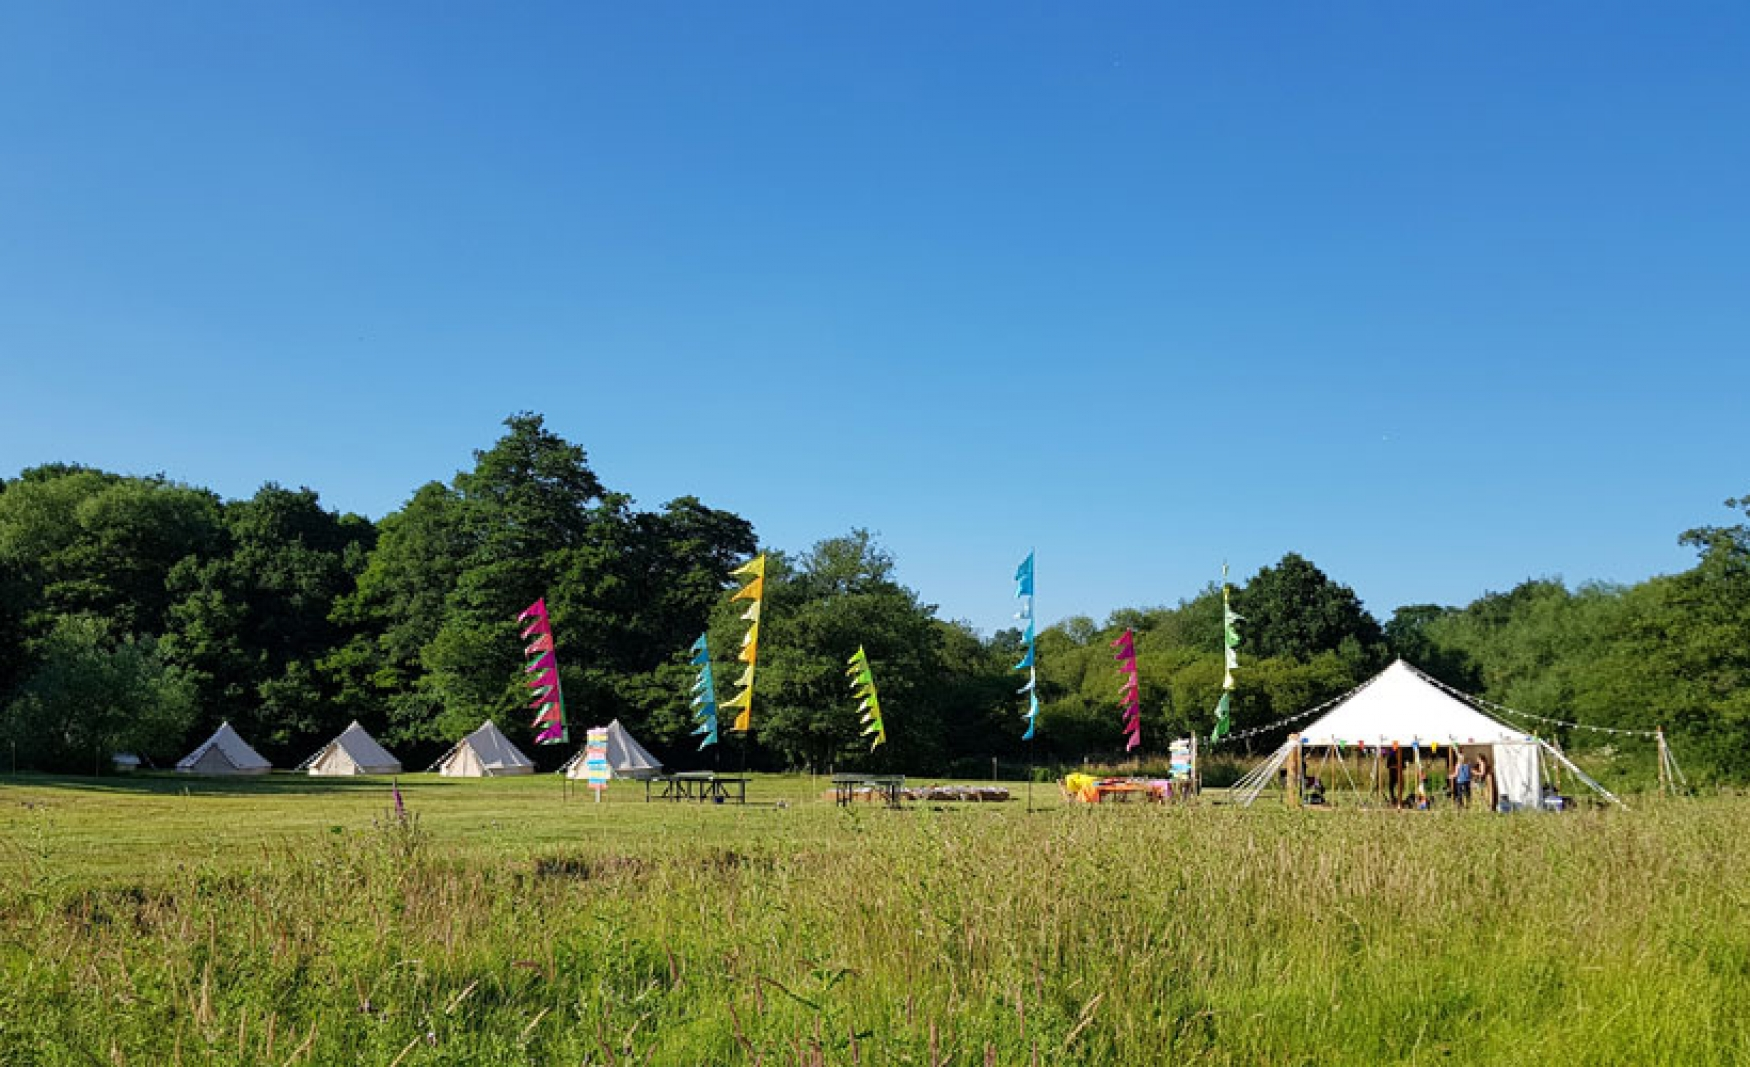 fiesta-fields-outdoor-wedding-events-company-tipi-surrey-sussex-eashing-farm-godalming